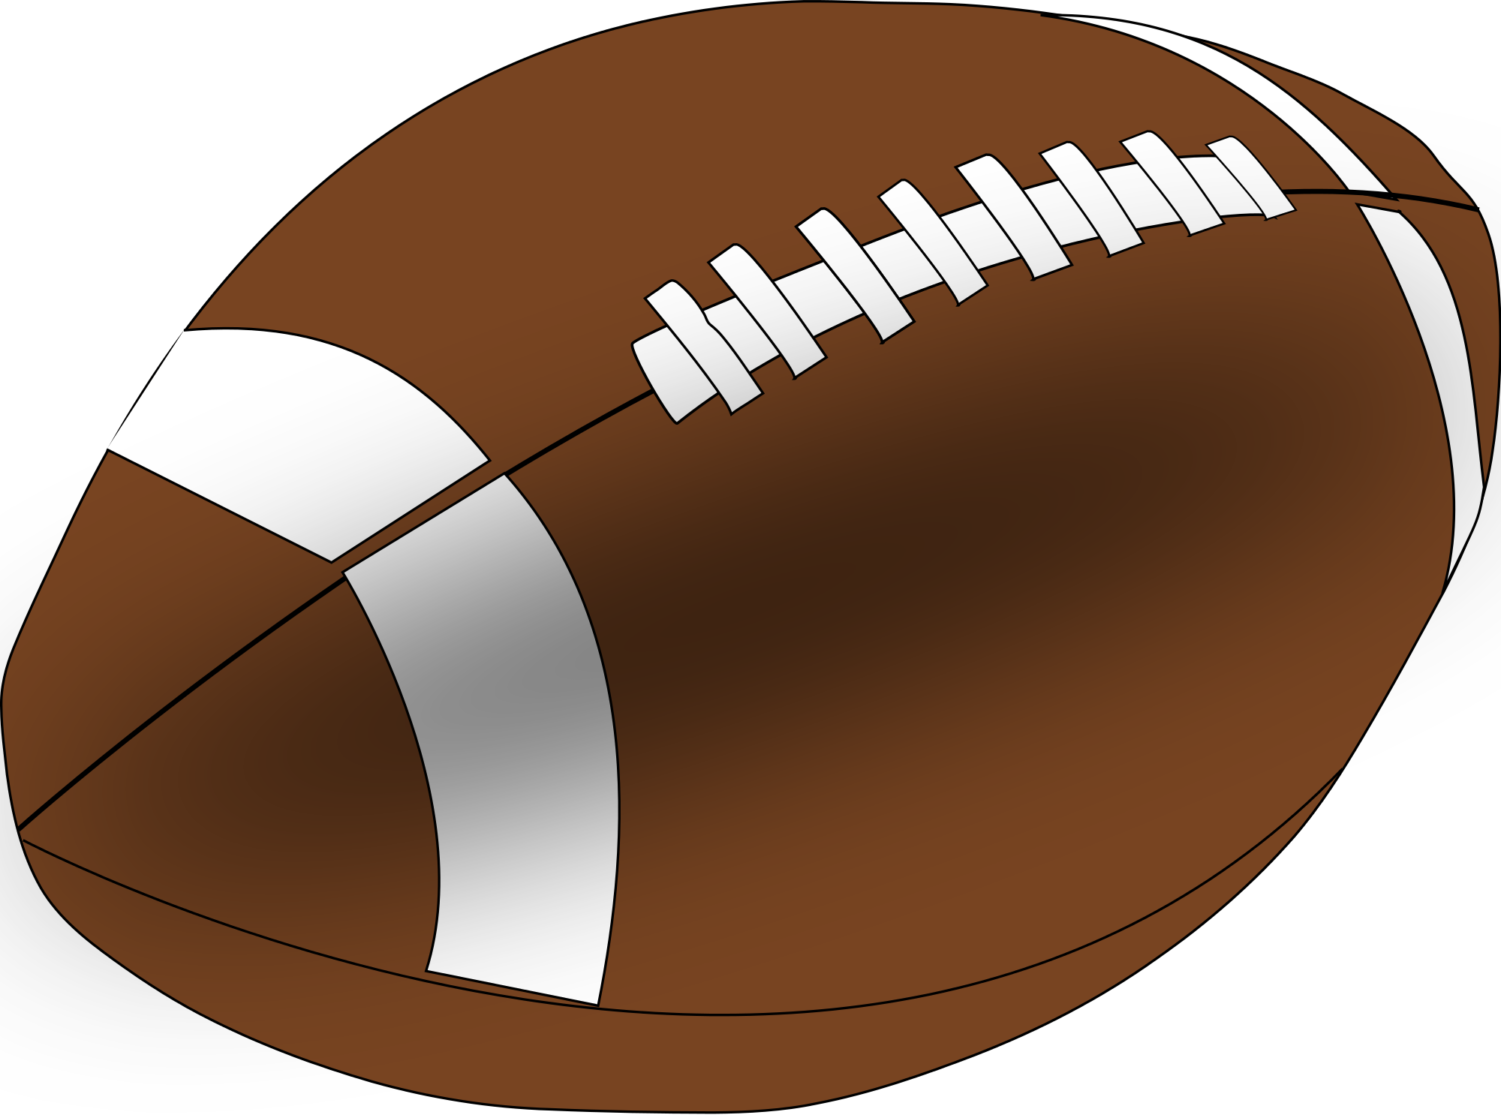 After being delayed in the fall, the annual powder puff football game will be held in February.